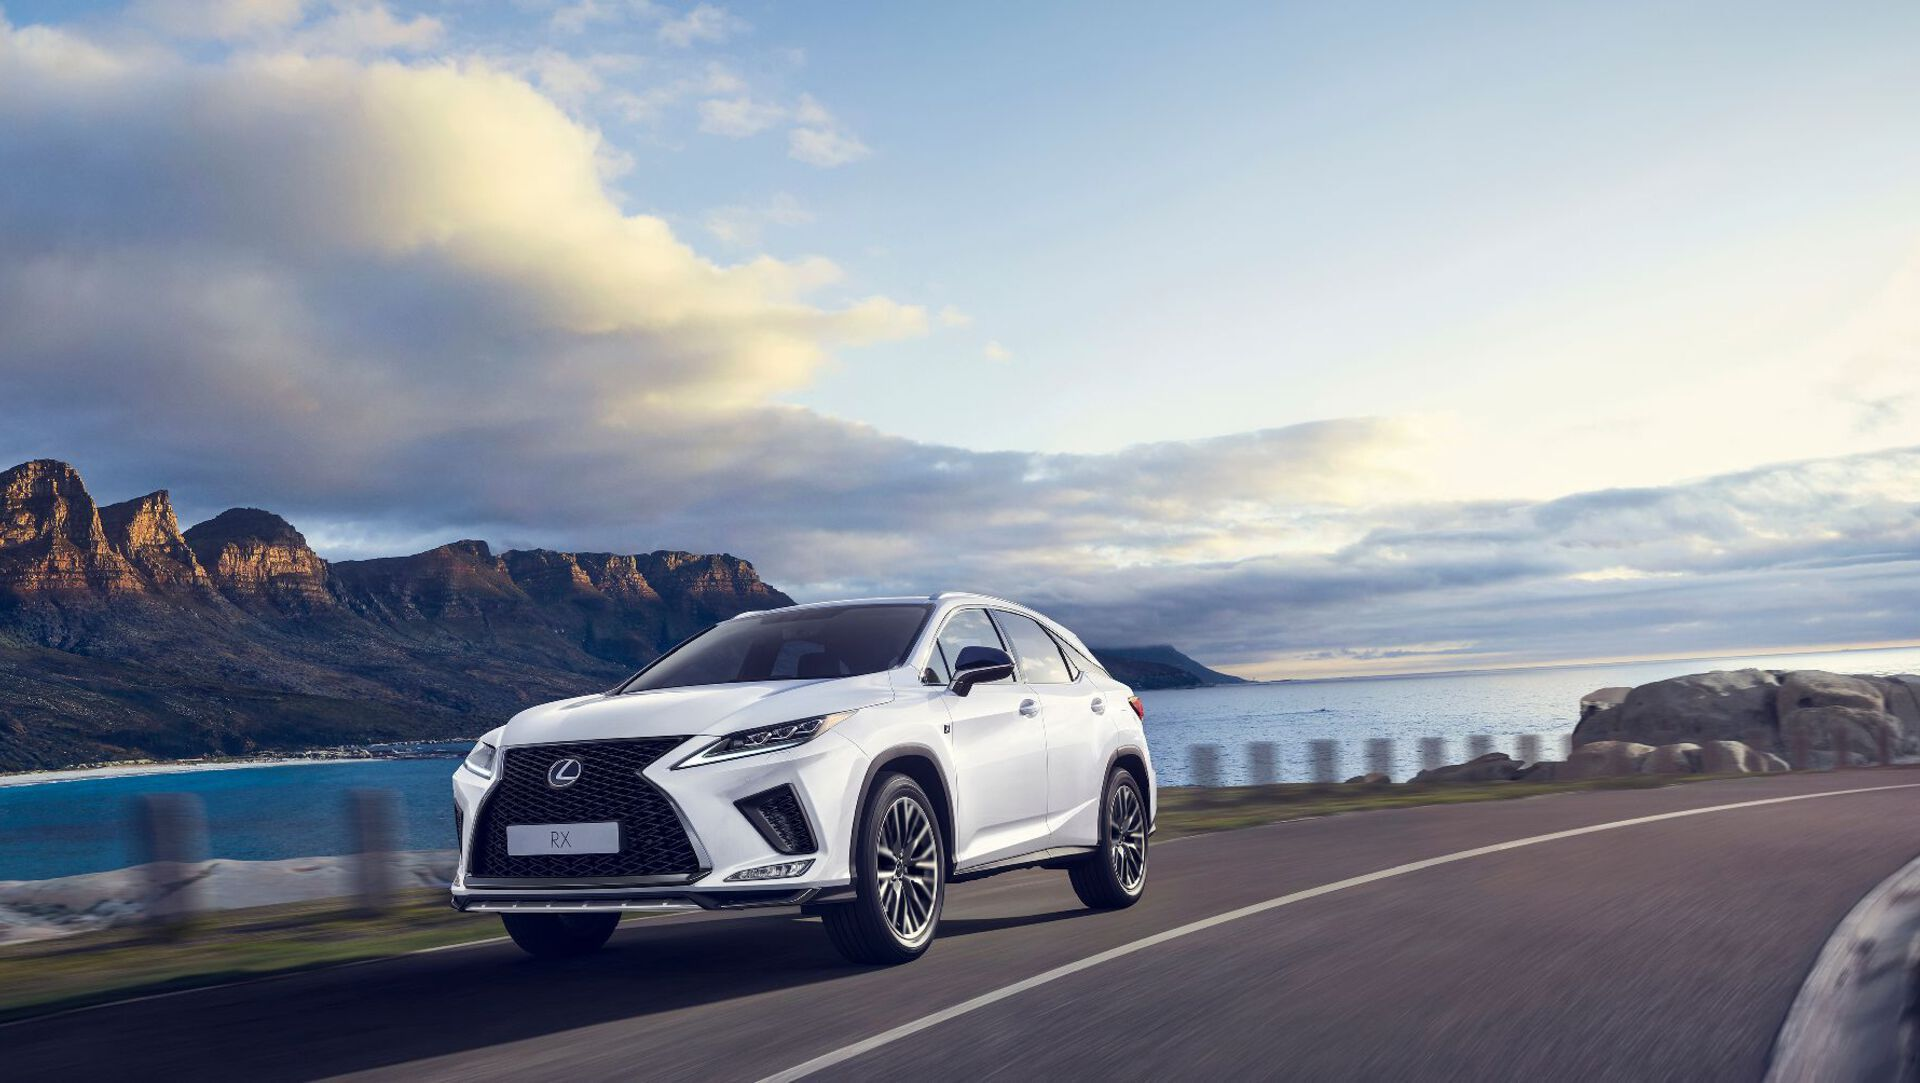 2020 Lexus RX Gets Revised Looks And A Touchscreen Along